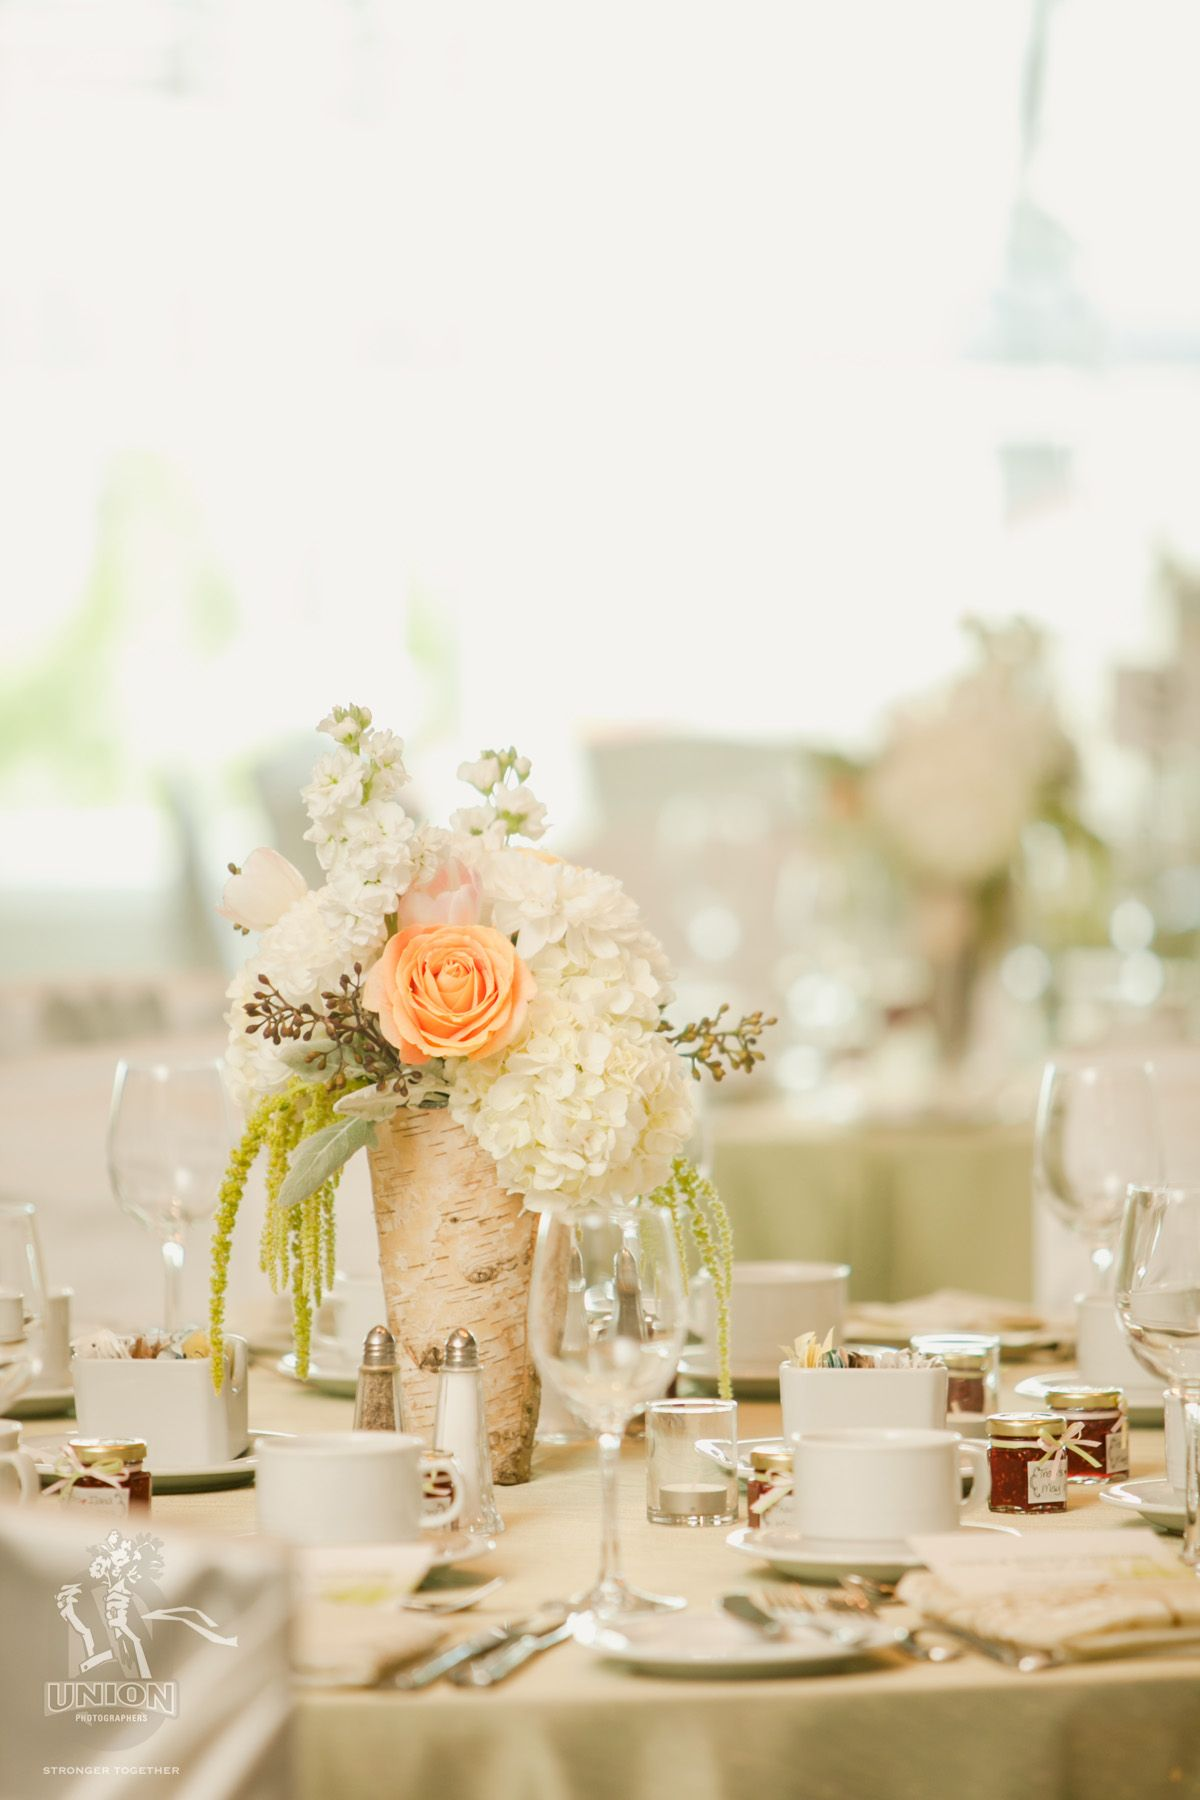 Centerpieces by Smitten Events. Birch bark vases with ivory and ...